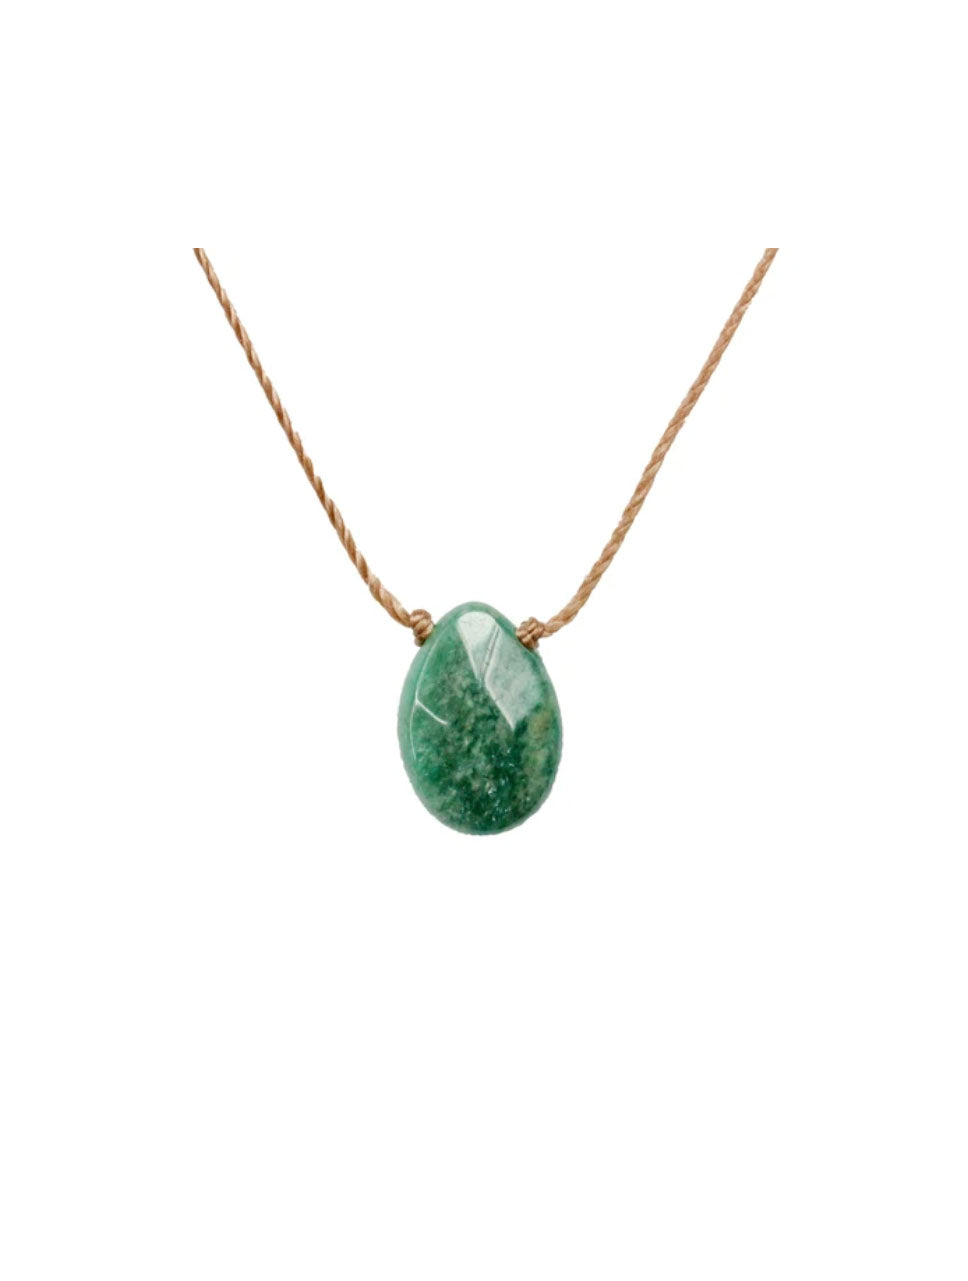 "SoulKu Jewelry Soul-Full of Light ""Courage"" Necklace in Amazonite"